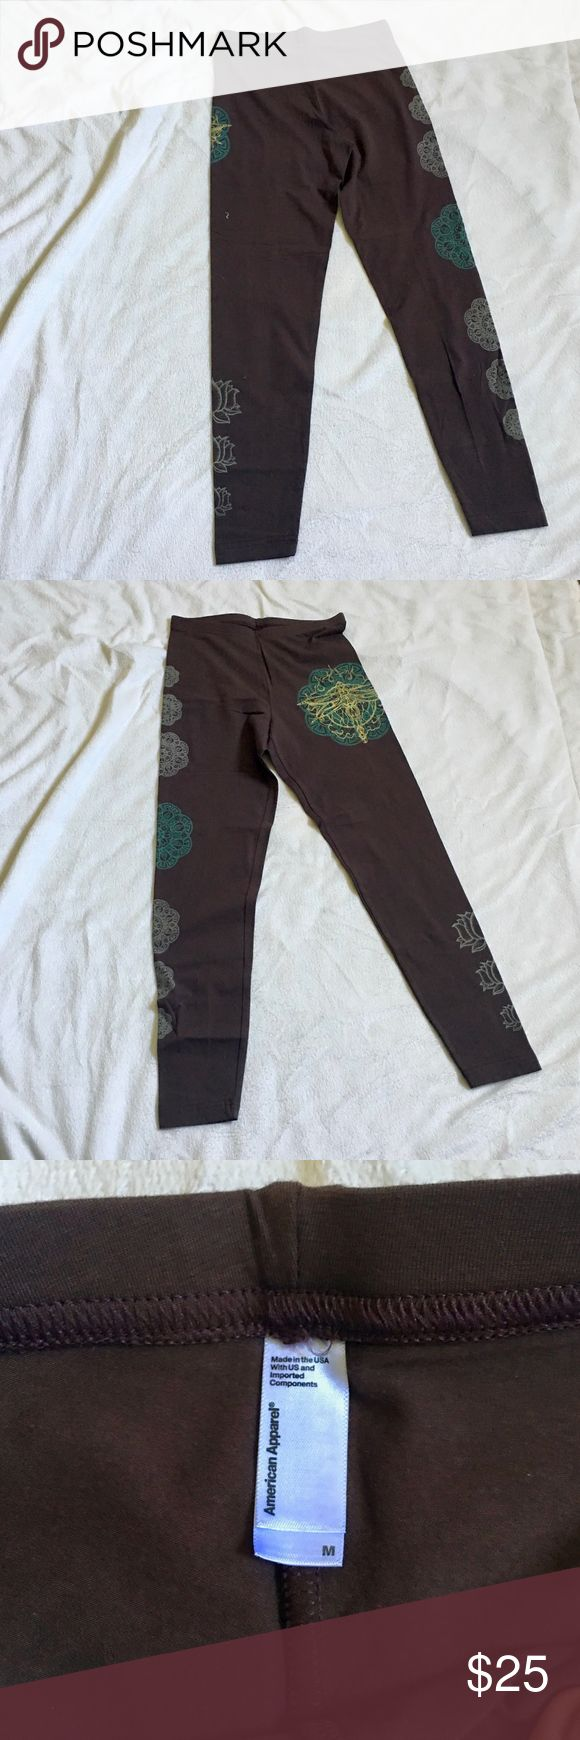 American Apparel Leggings Hippy, bohemian print leggings. Perfect for yoga or meditation. Bundle for an added discount. American Apparel Pants Leggings